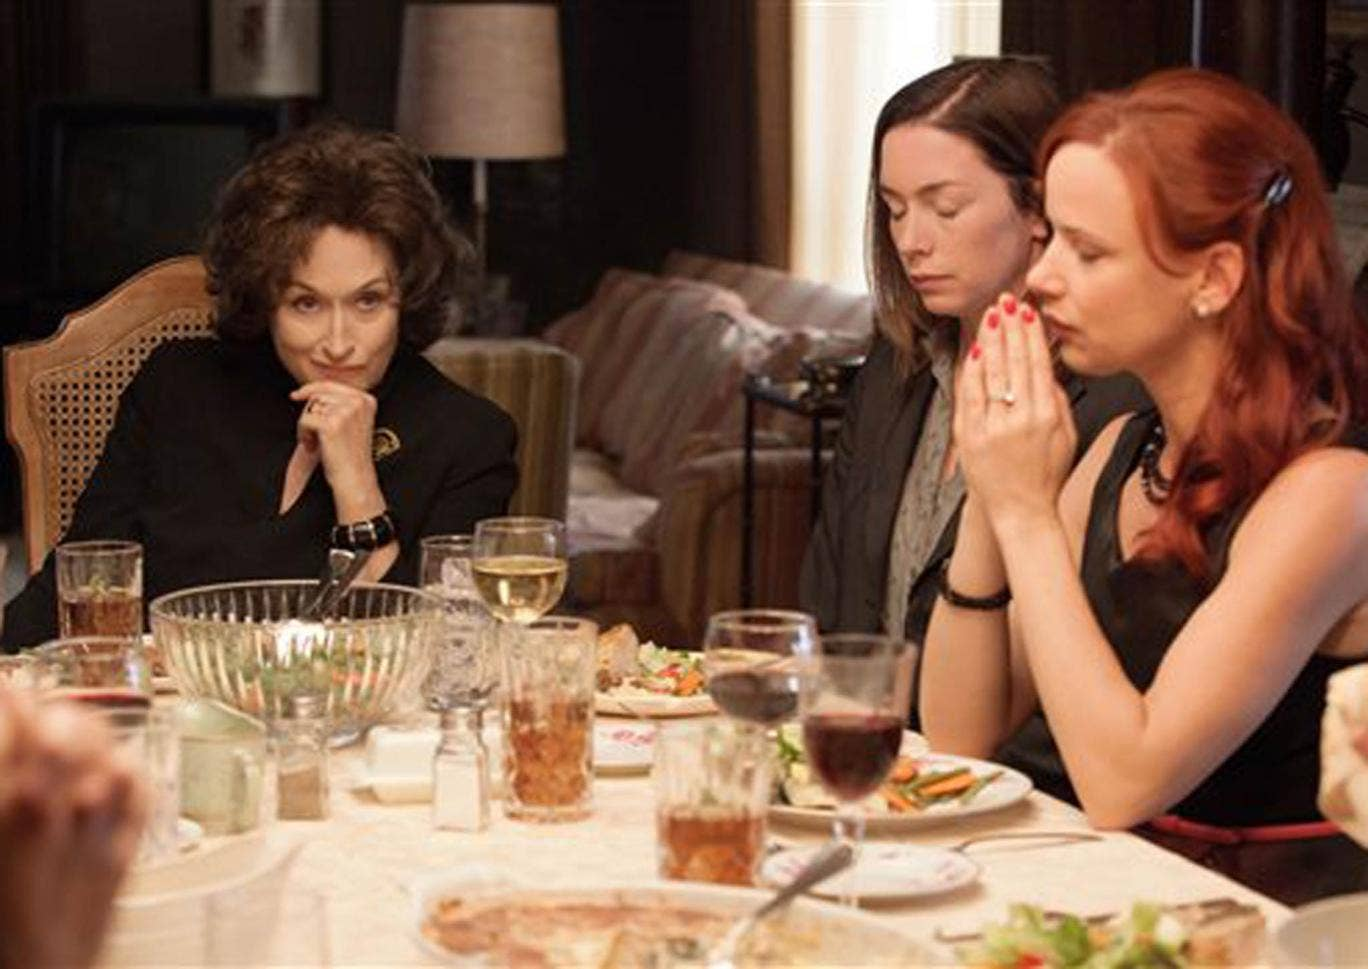 Meryl Streep, Julianne Nicholson and Juliette Lewis in August: Osage County